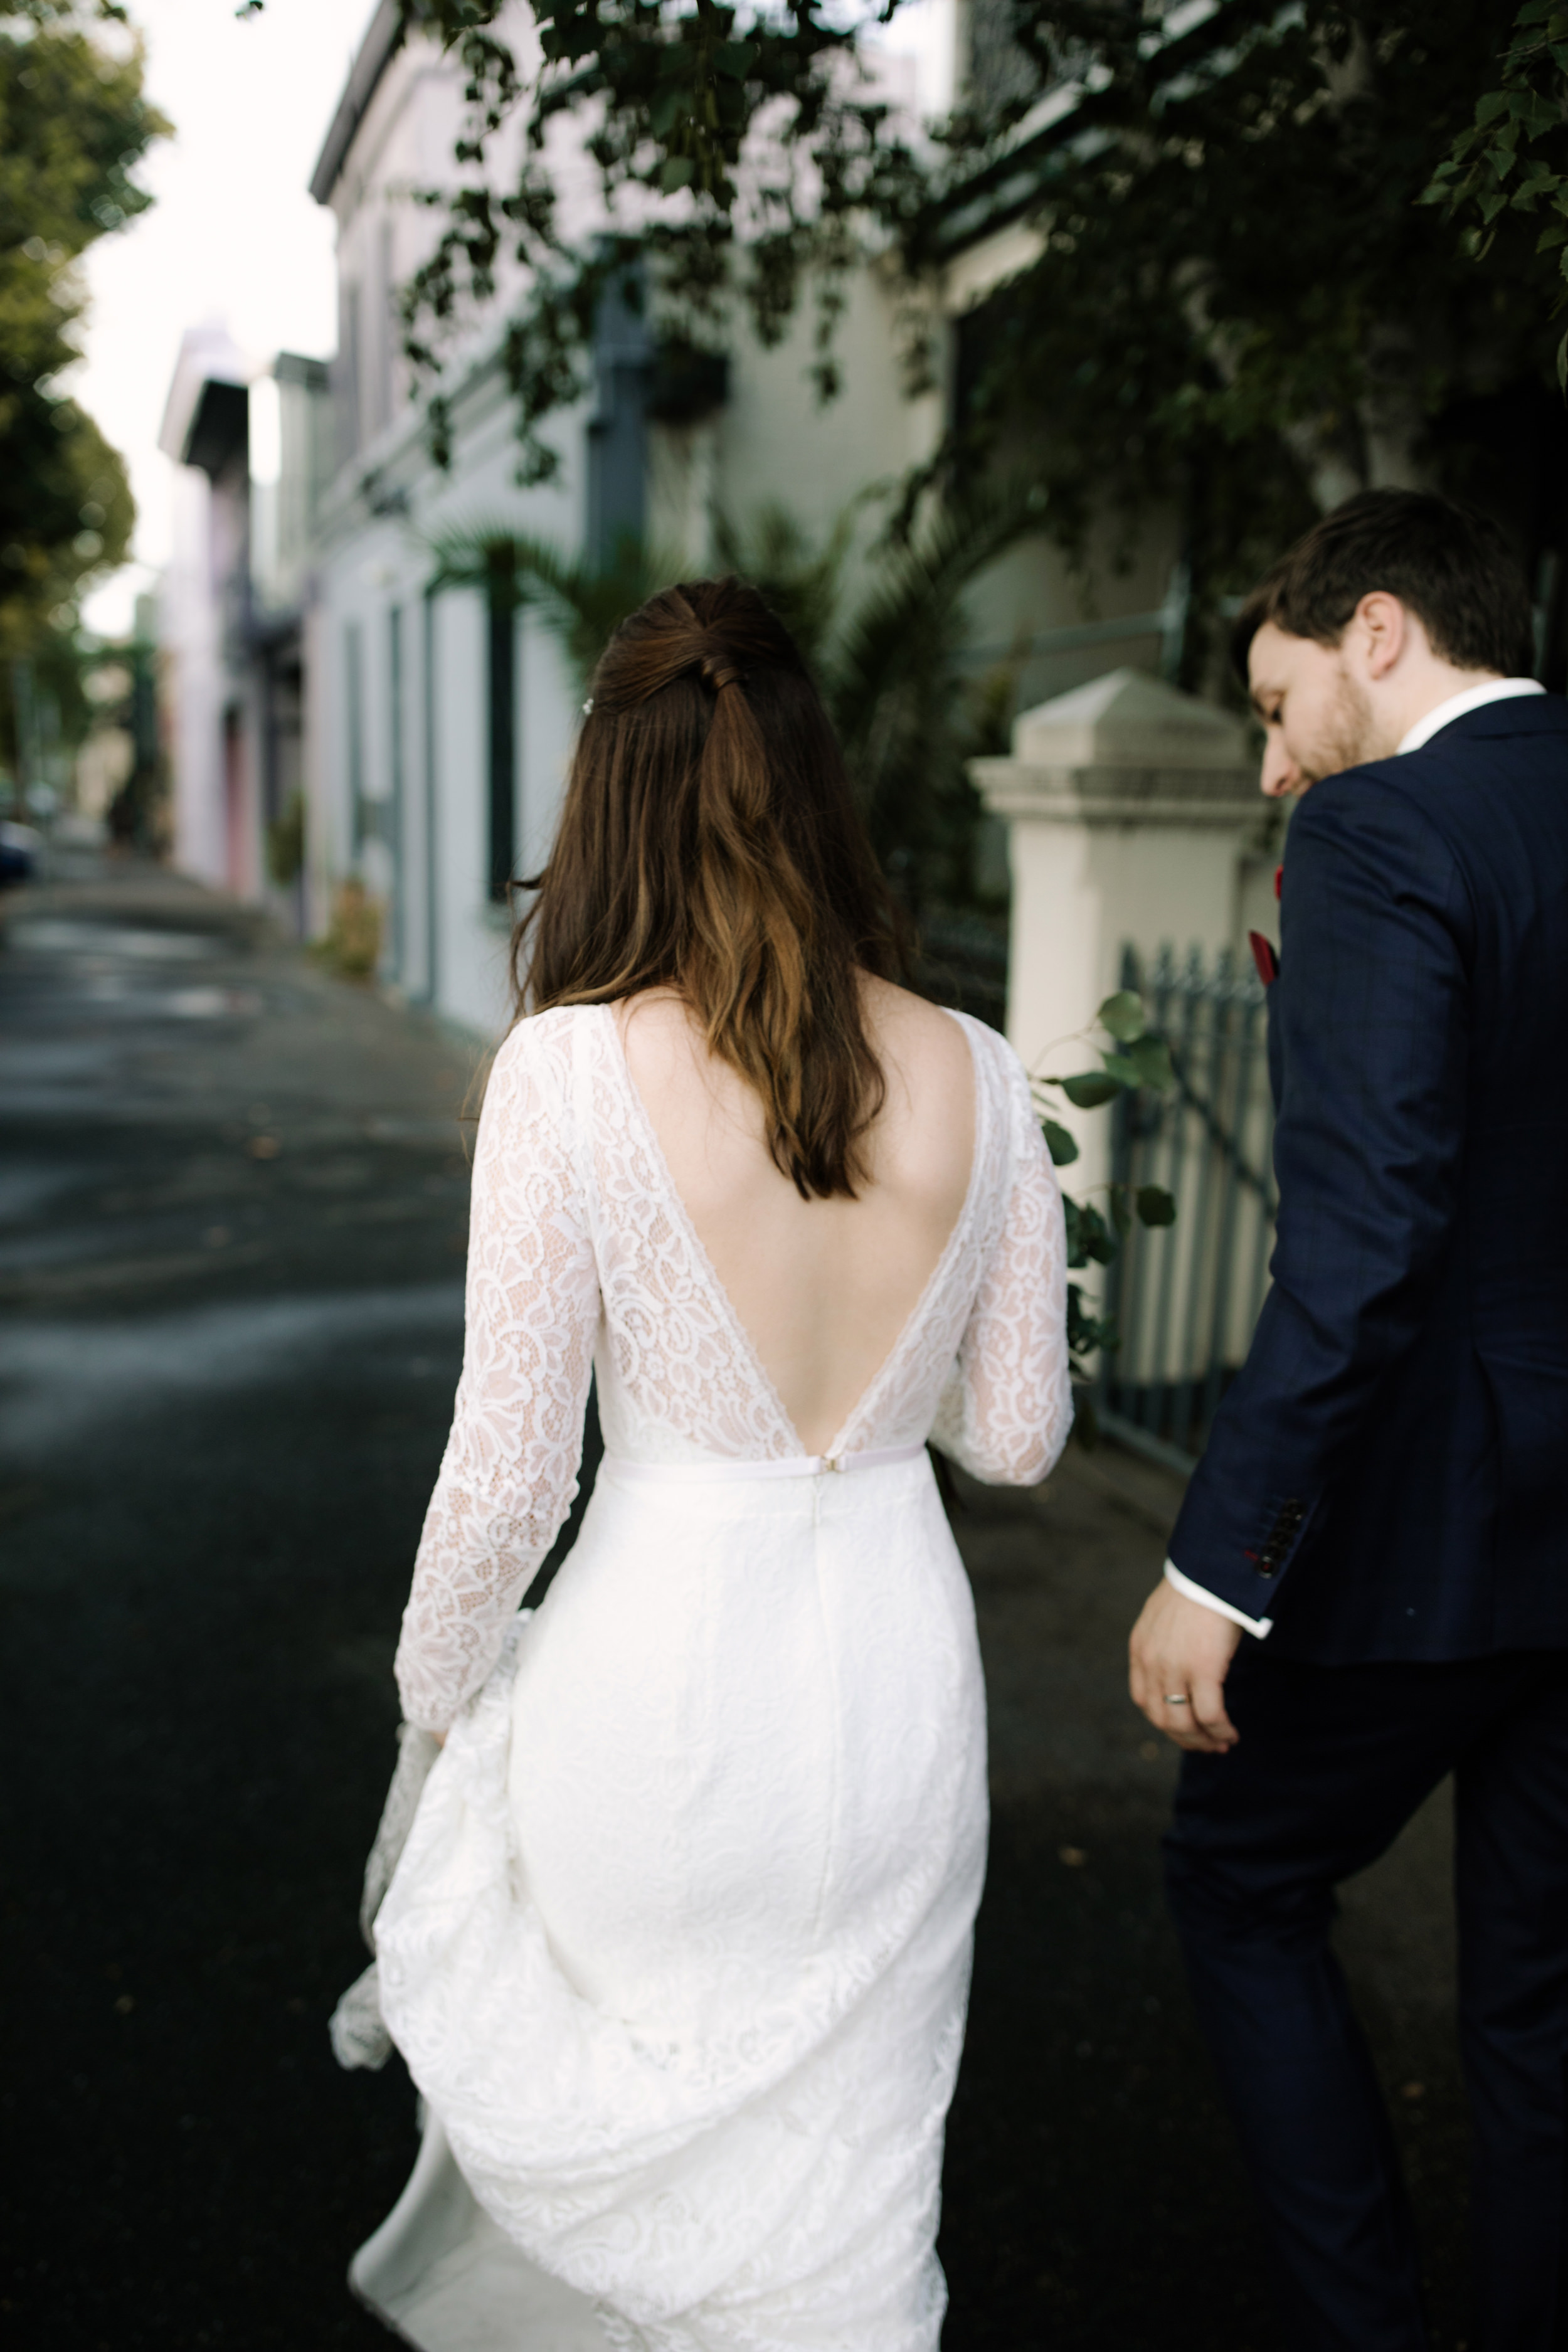 I_Got_You_Babe_Weddings_Emily_Matt_Rupert_Glasshaus_Melbourne0144.JPG